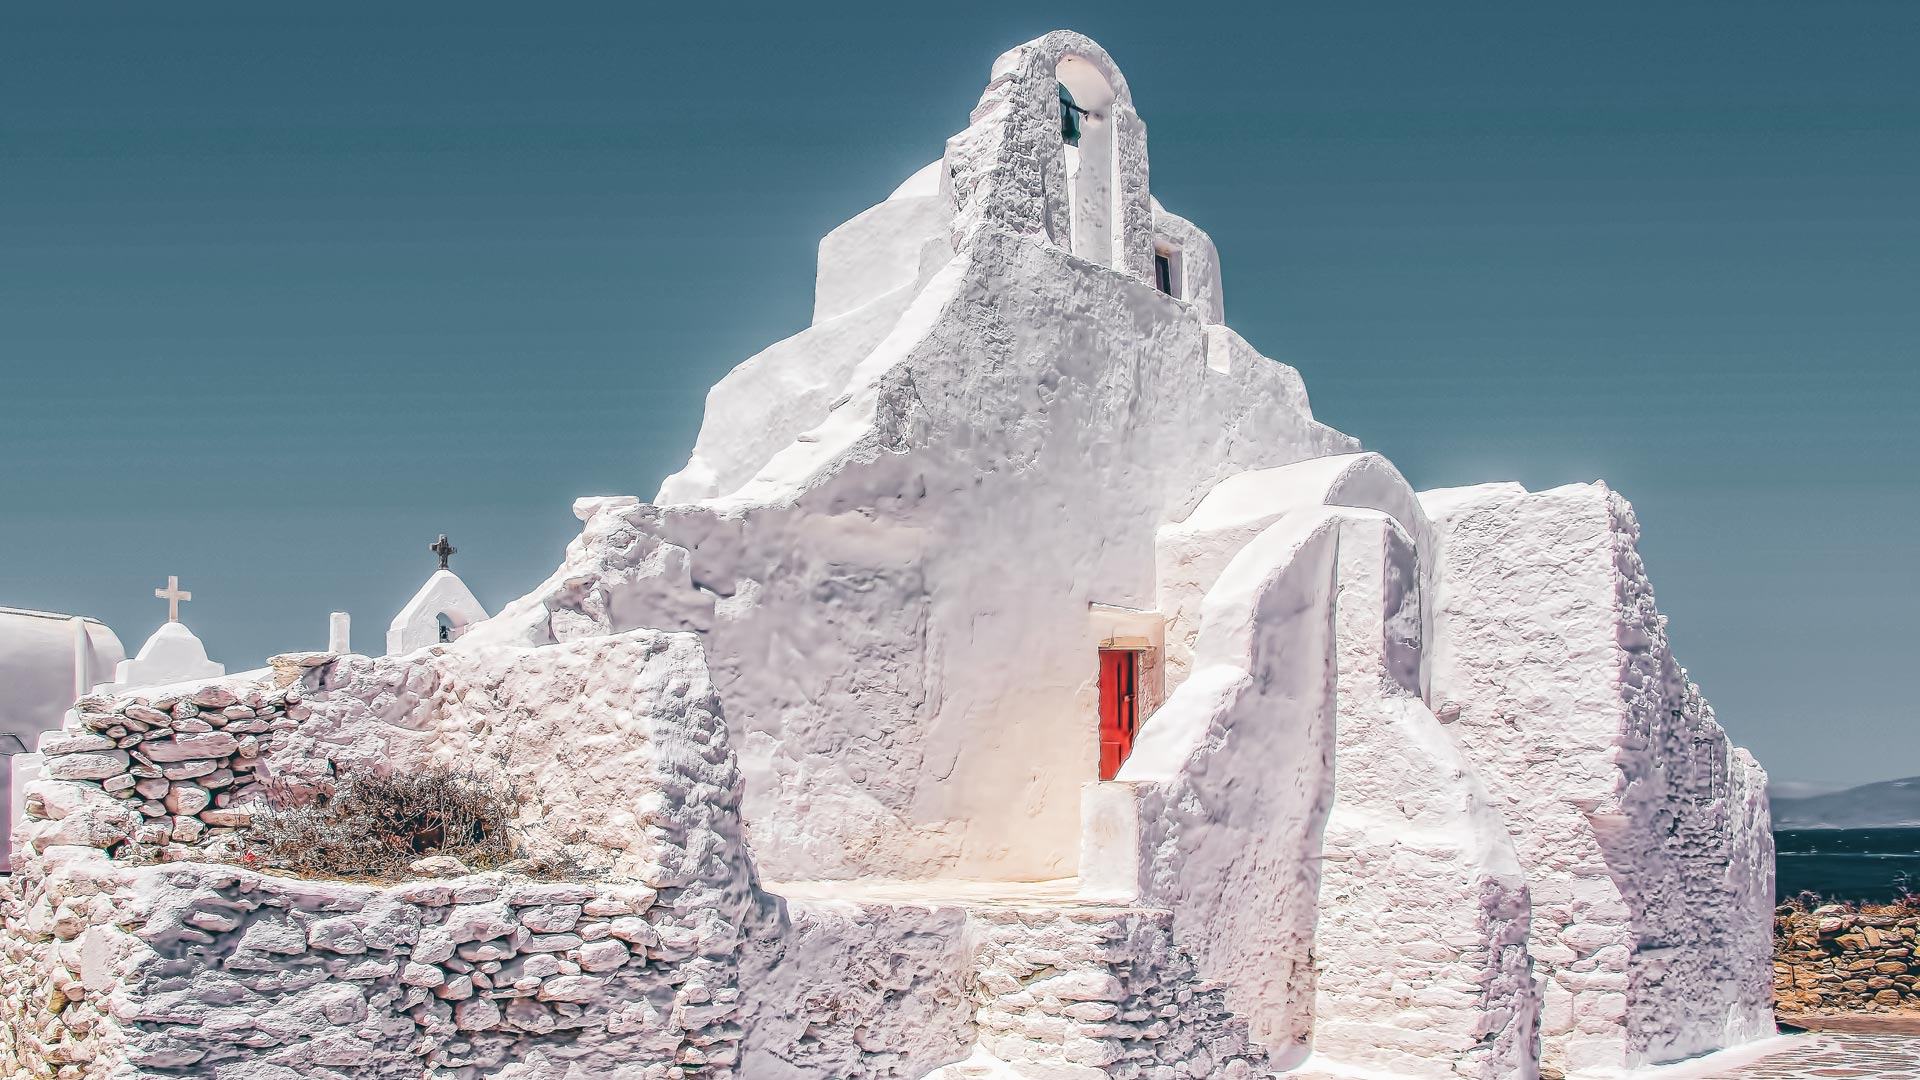 Panagia Paraportiani, sculpted into the rock and painted the most radiant white